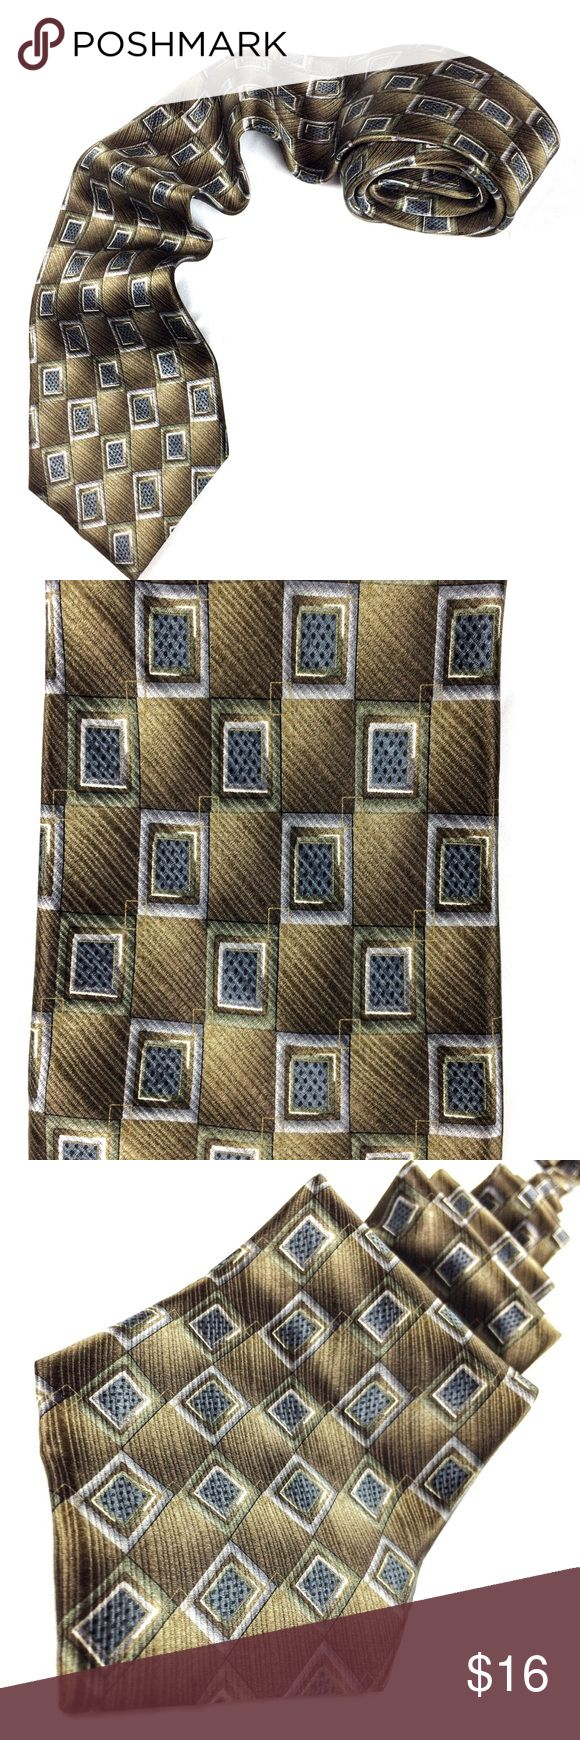 PRONTO UOMO 100% Silk Men's Dress Tie PRONTO UOMO 100% Silk Men's Dress Tie. Colors include: light dark & medium blue; olive green; white; black; gold; gray; tan.  This tie catches the light in pretty amazing ways making the diagonal ombré rectangles look like they are lit up and subtly moving light particles around the tie as you move. Matches a lot of shirt and suit colors. This would look great with black, blue, tan or gray suit.  After scouring I found just one minute snag, included in…